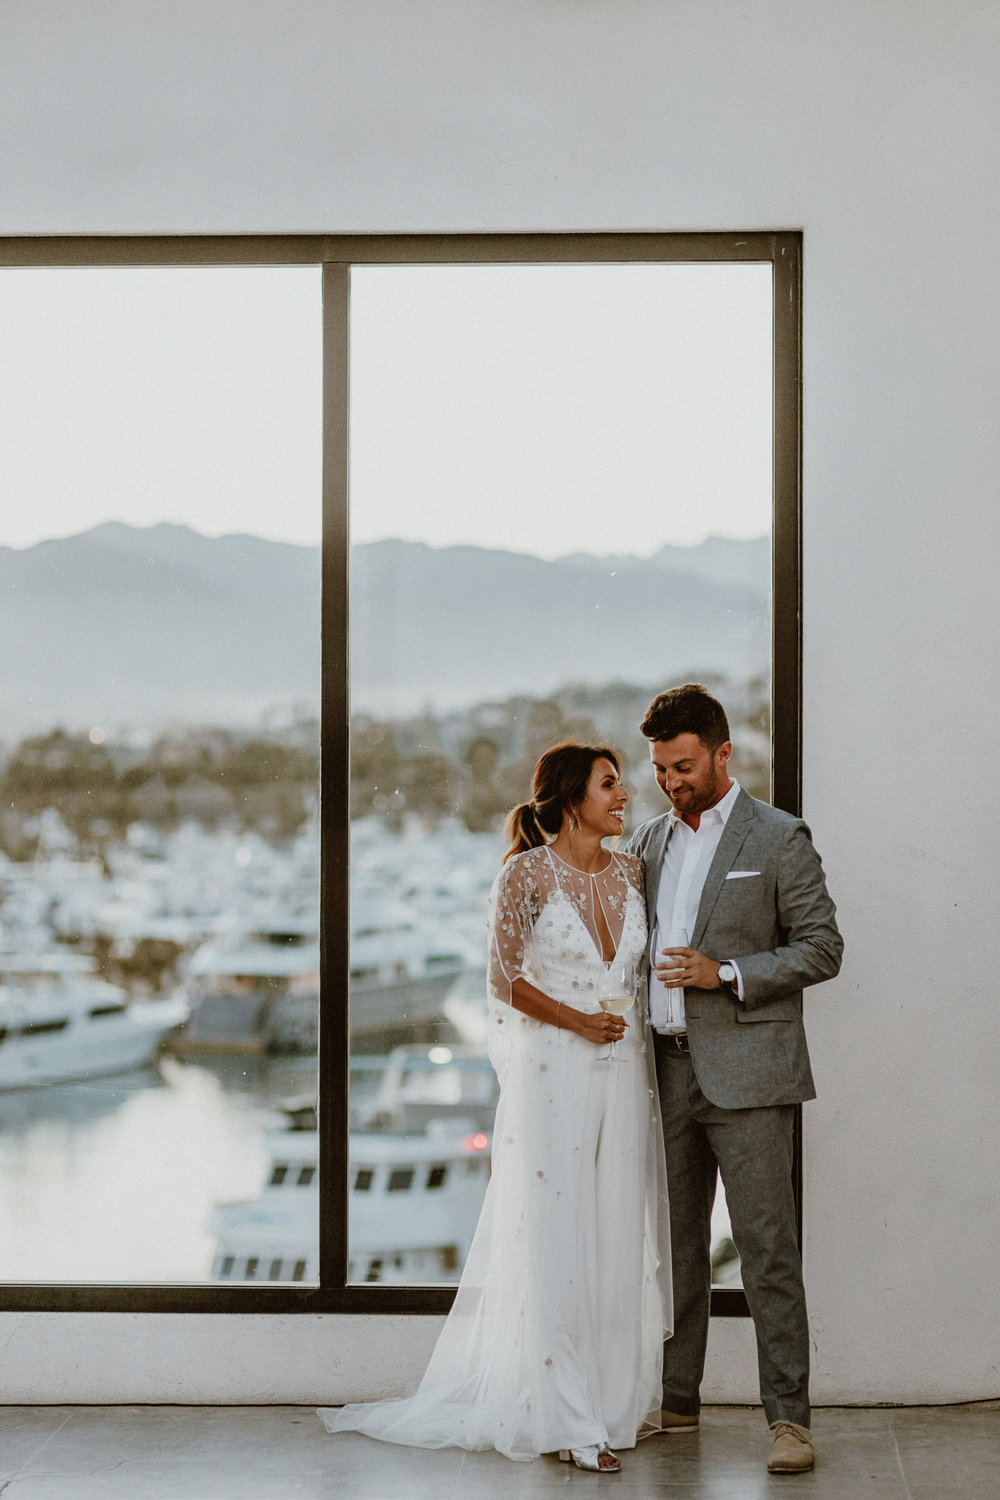 Andy + Ashley Los Cabos Wedding | What to Wear for Your Wedding Welcome Reception